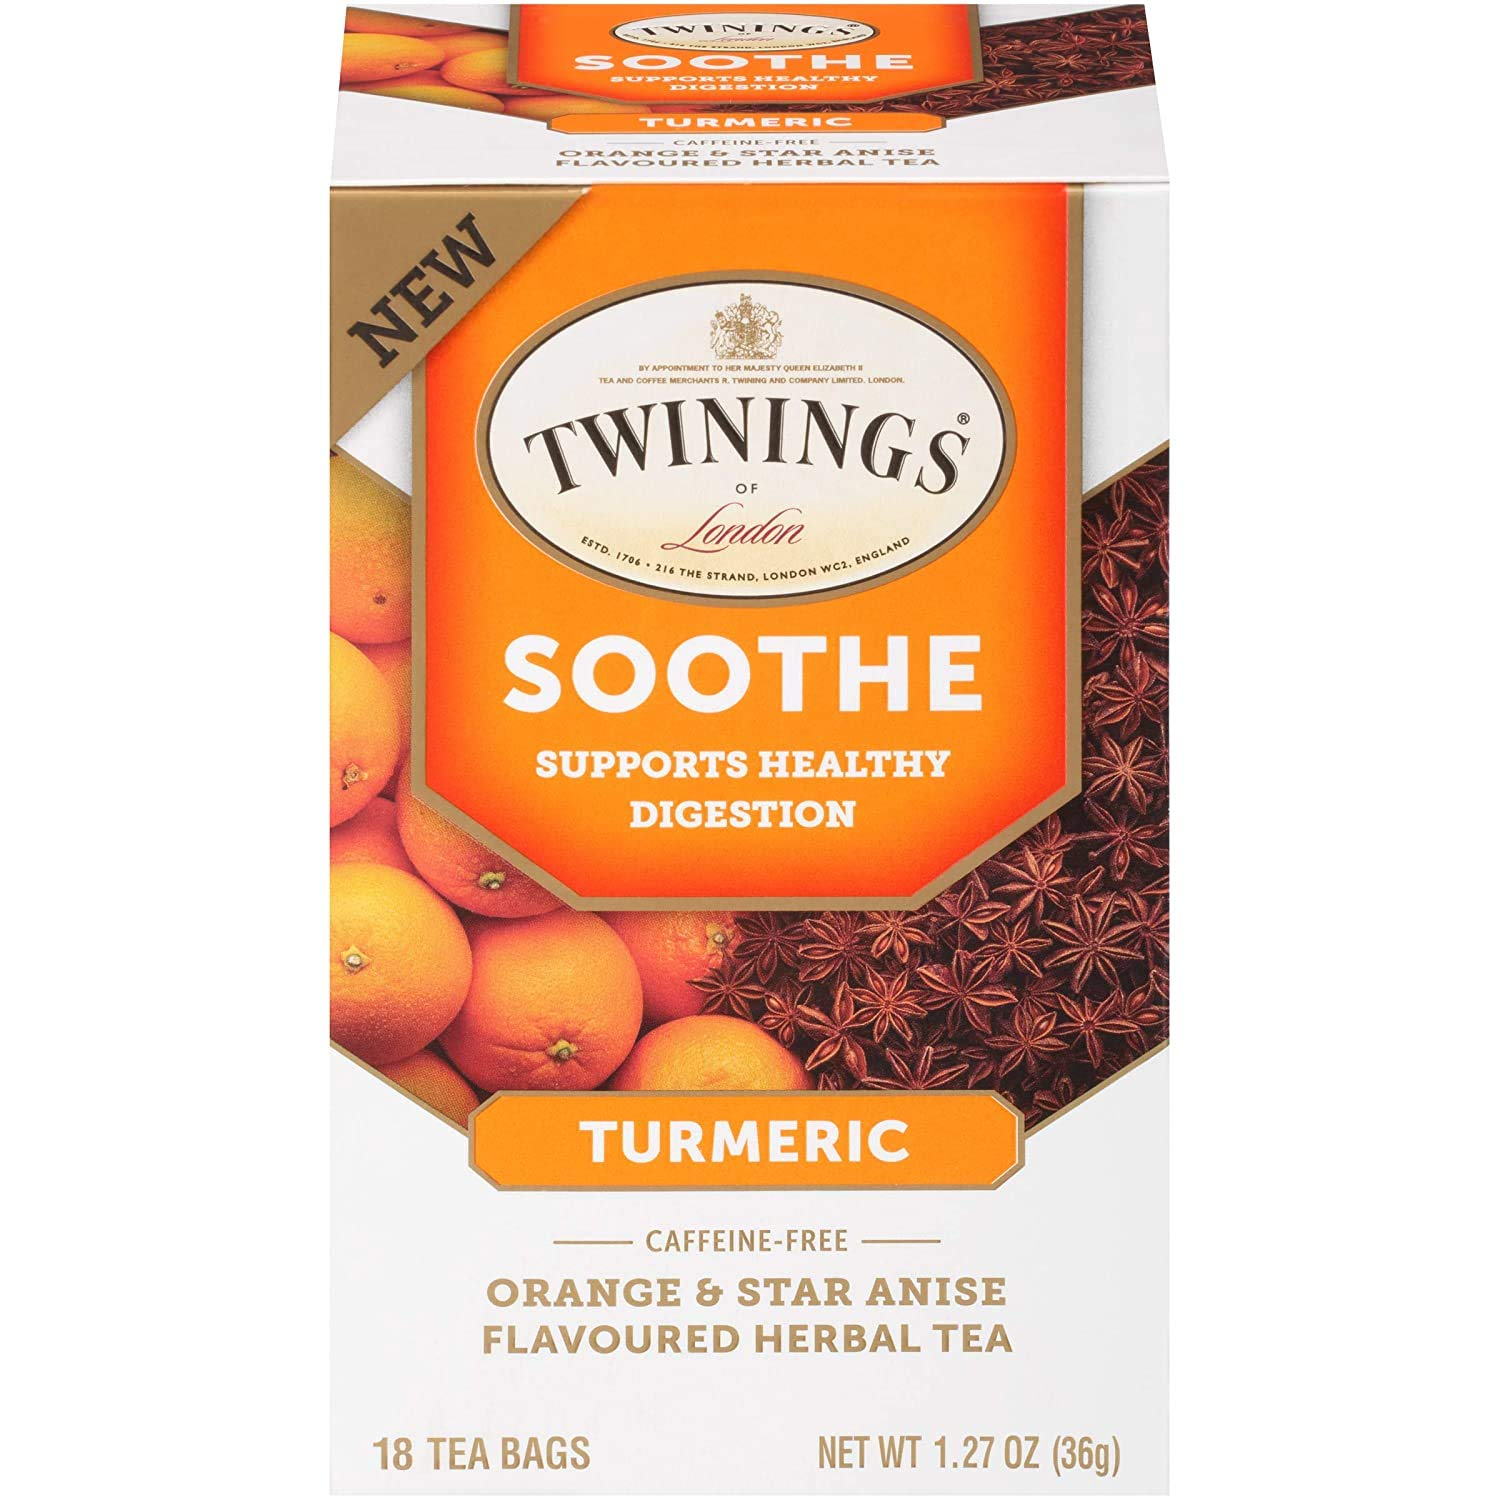 Twinings of London Daily Wellness Tea, Soothe Digestion Supporting Turmeric, Orange & Star Anise, Flavored Herbal Tea, 18 Count (Pack of 1)